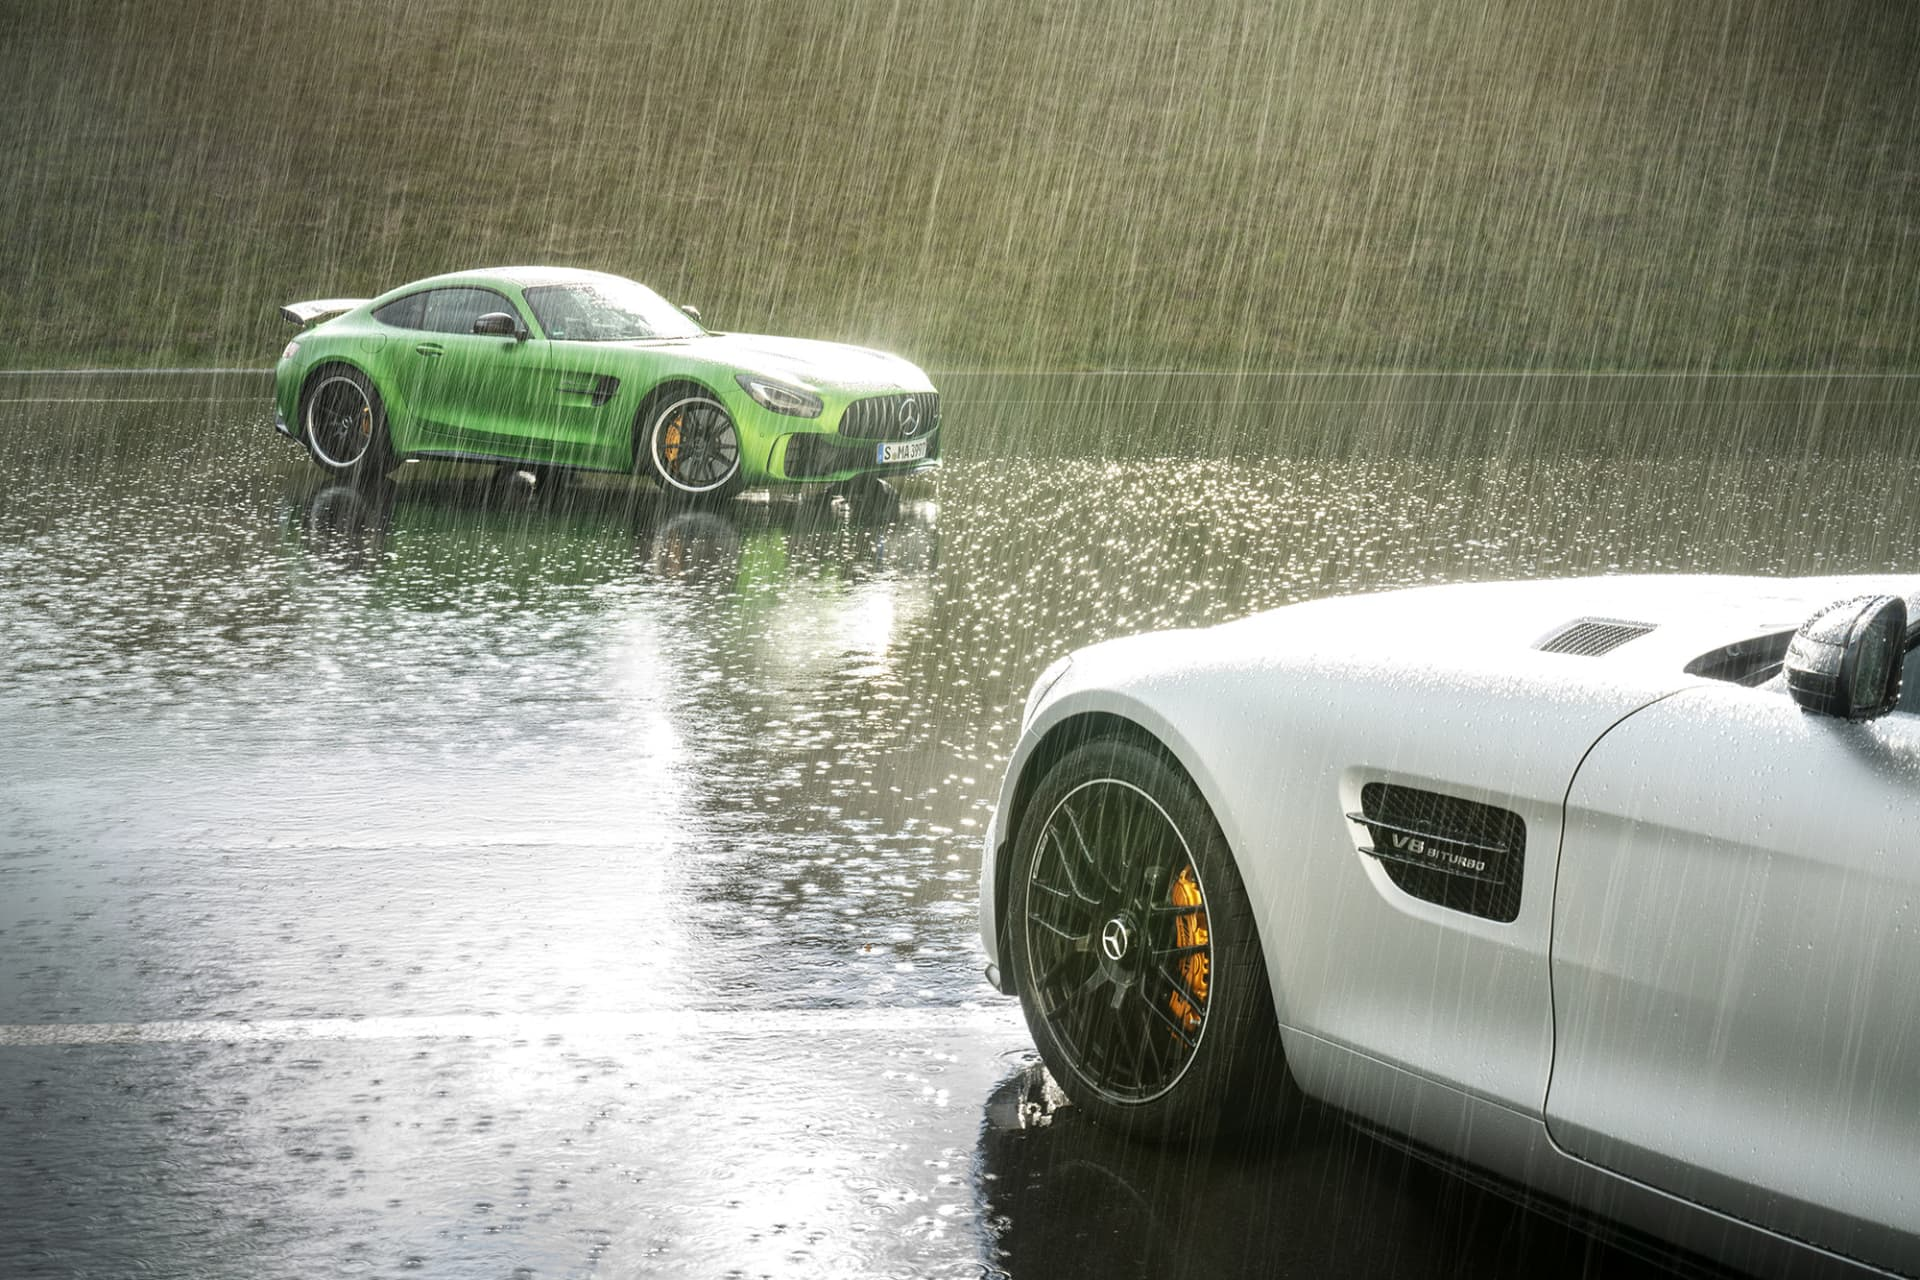 In spite of the rain, the car's R tires did well on Bilster Berg's challenging track.